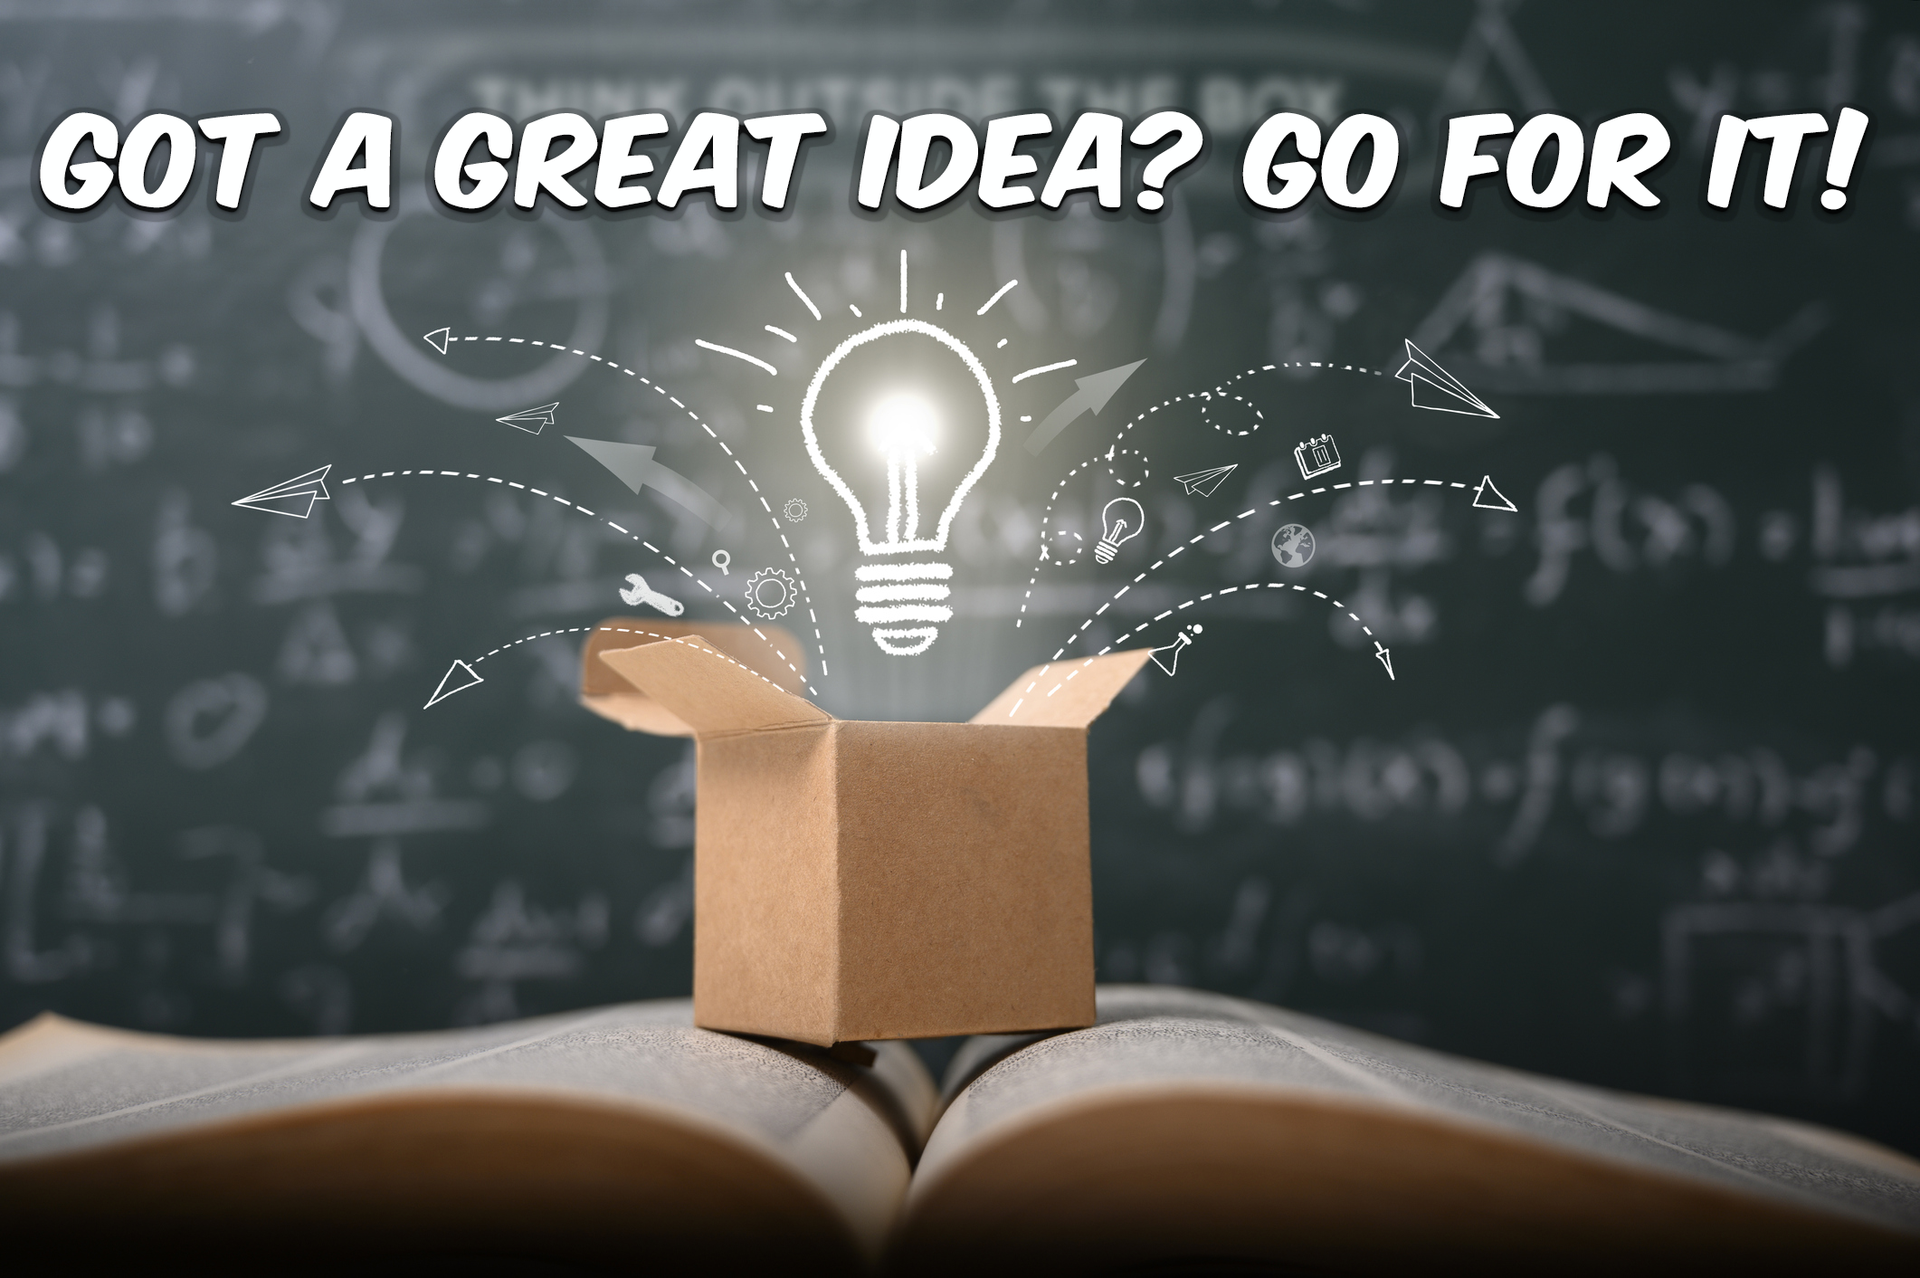 Chalkboard background with lightbulb rising out of a box. Text: Got a great idea? Go for it!